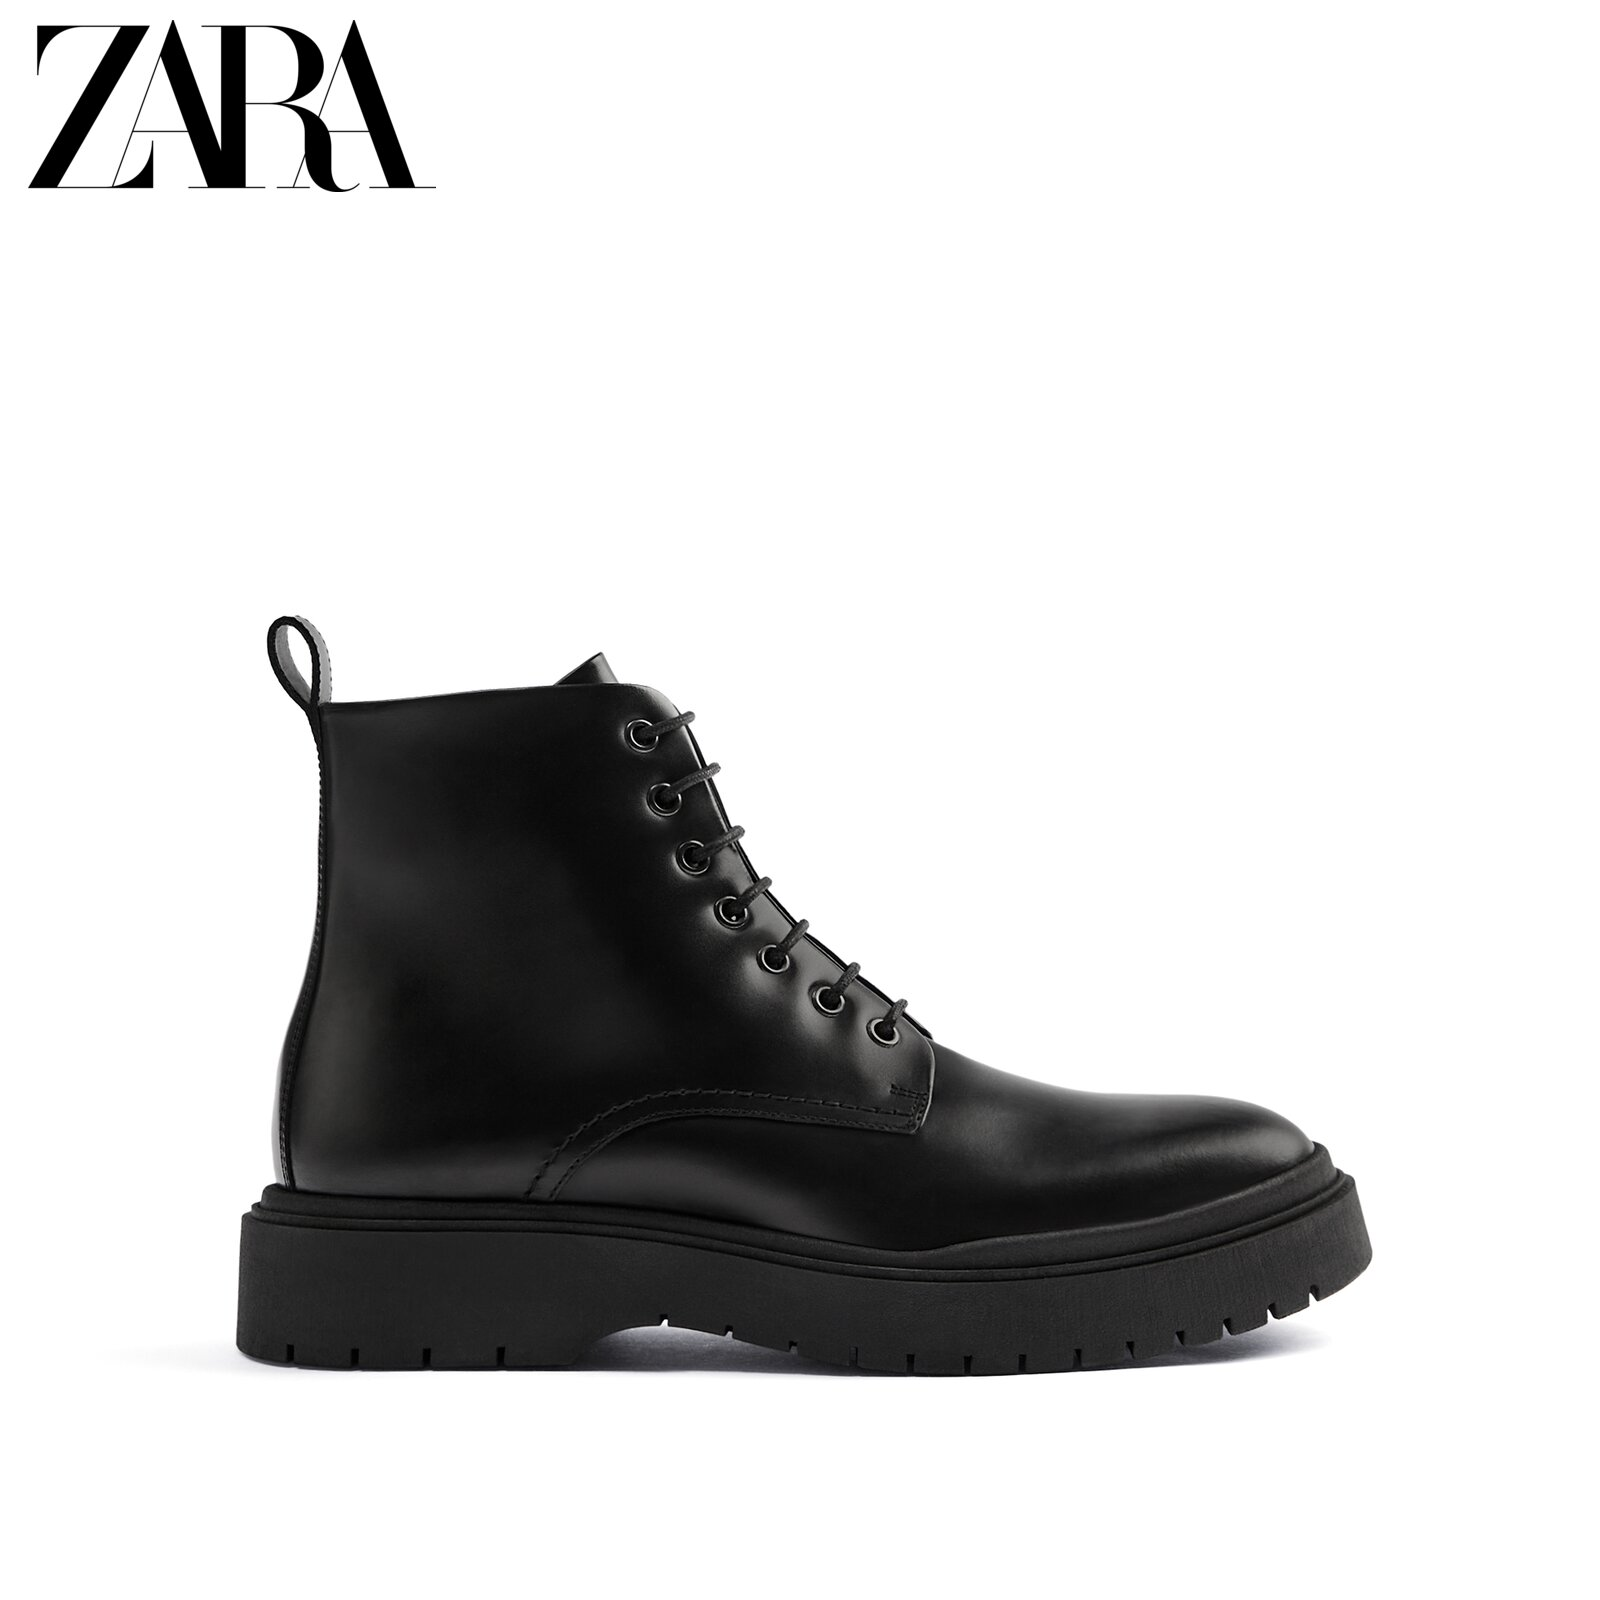 ZARA new men's shoes black thick-soled cow leather retro wild classic Martin boots leather boots 12017620040